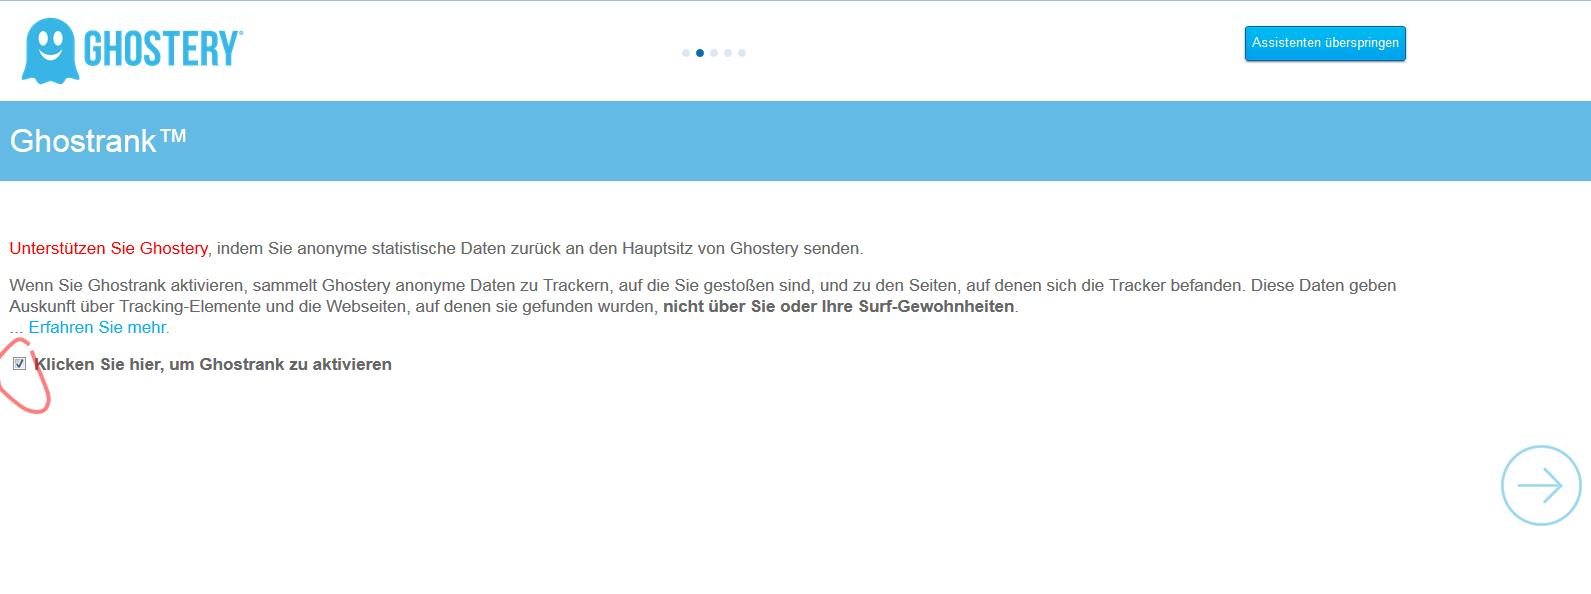 ghostery_step2